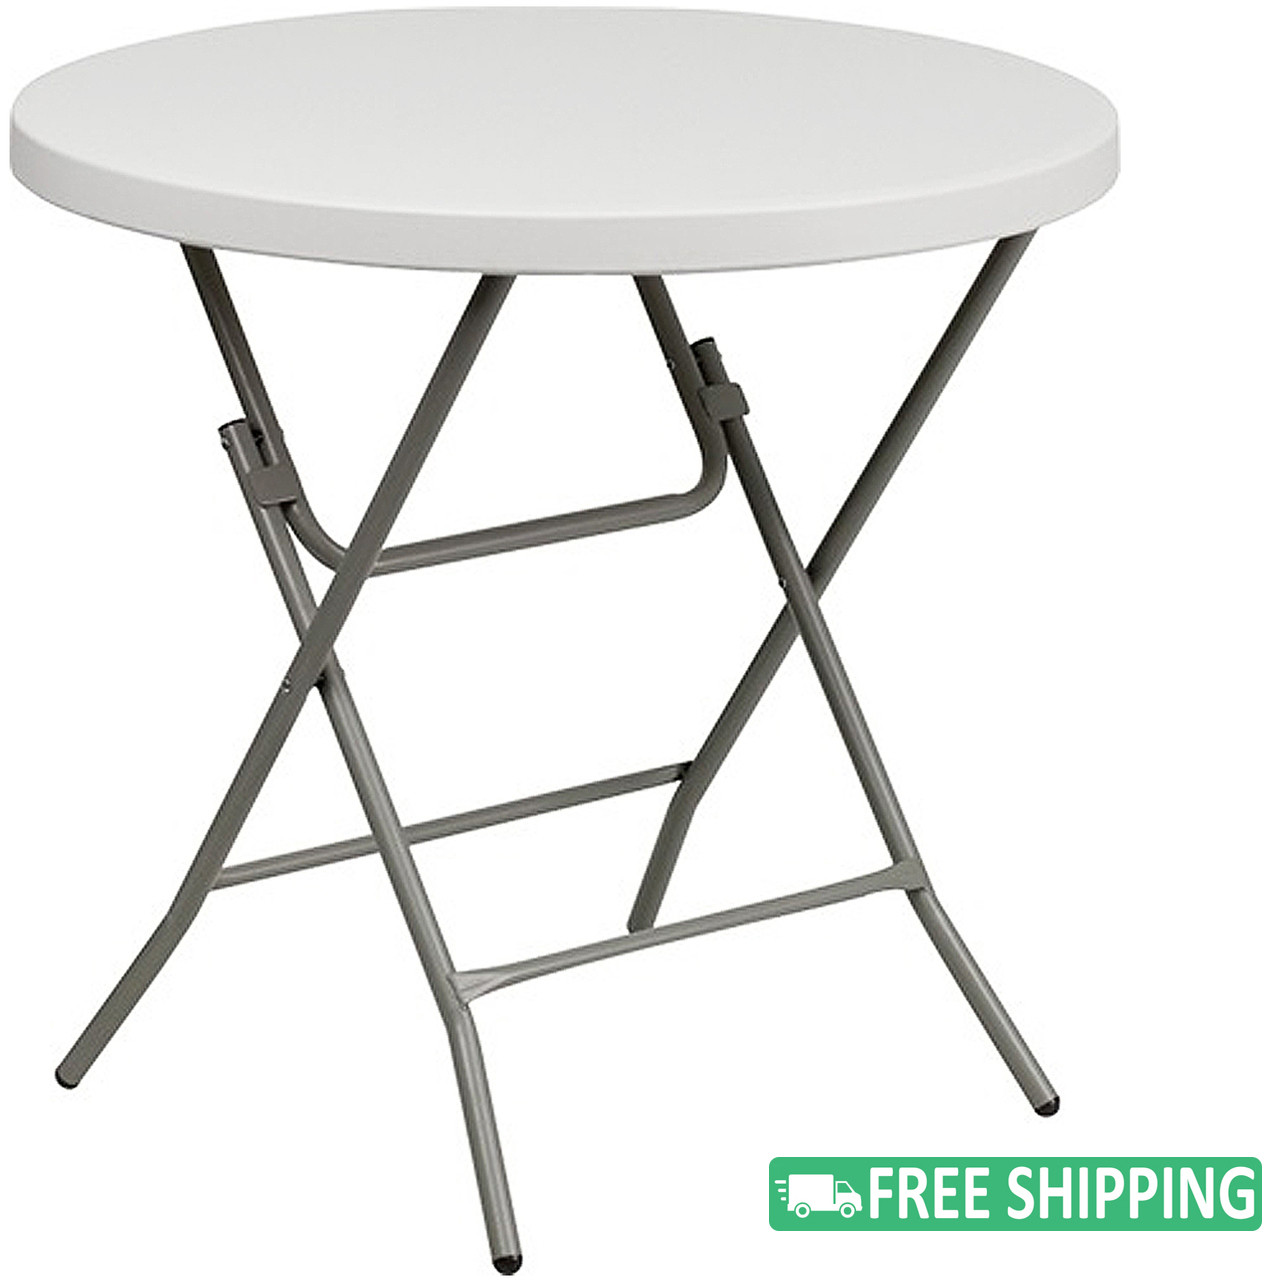 Round Plastic Tables 10 Pack Advantage 32 In Round White Plastic Folding Table Adv 32rlz White 10